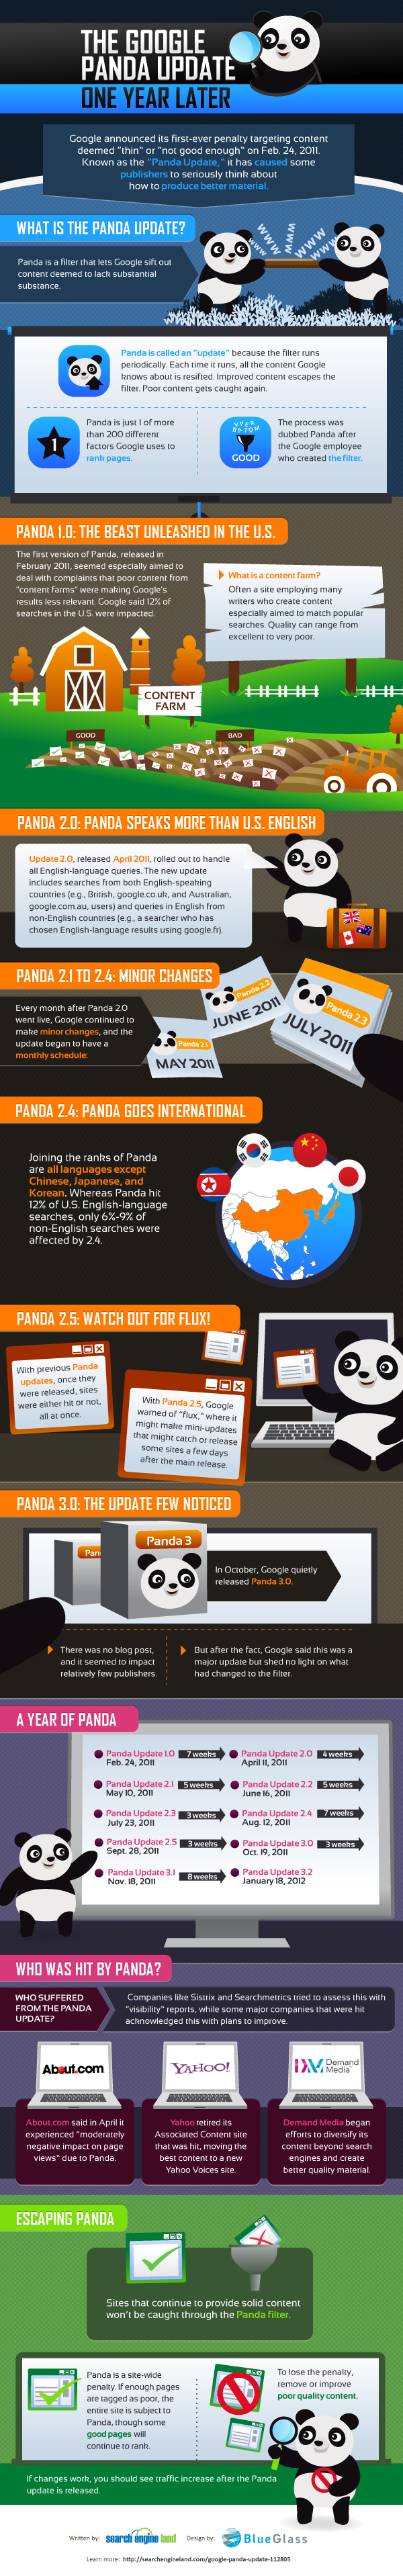 The Google Panda Update - One Year Later